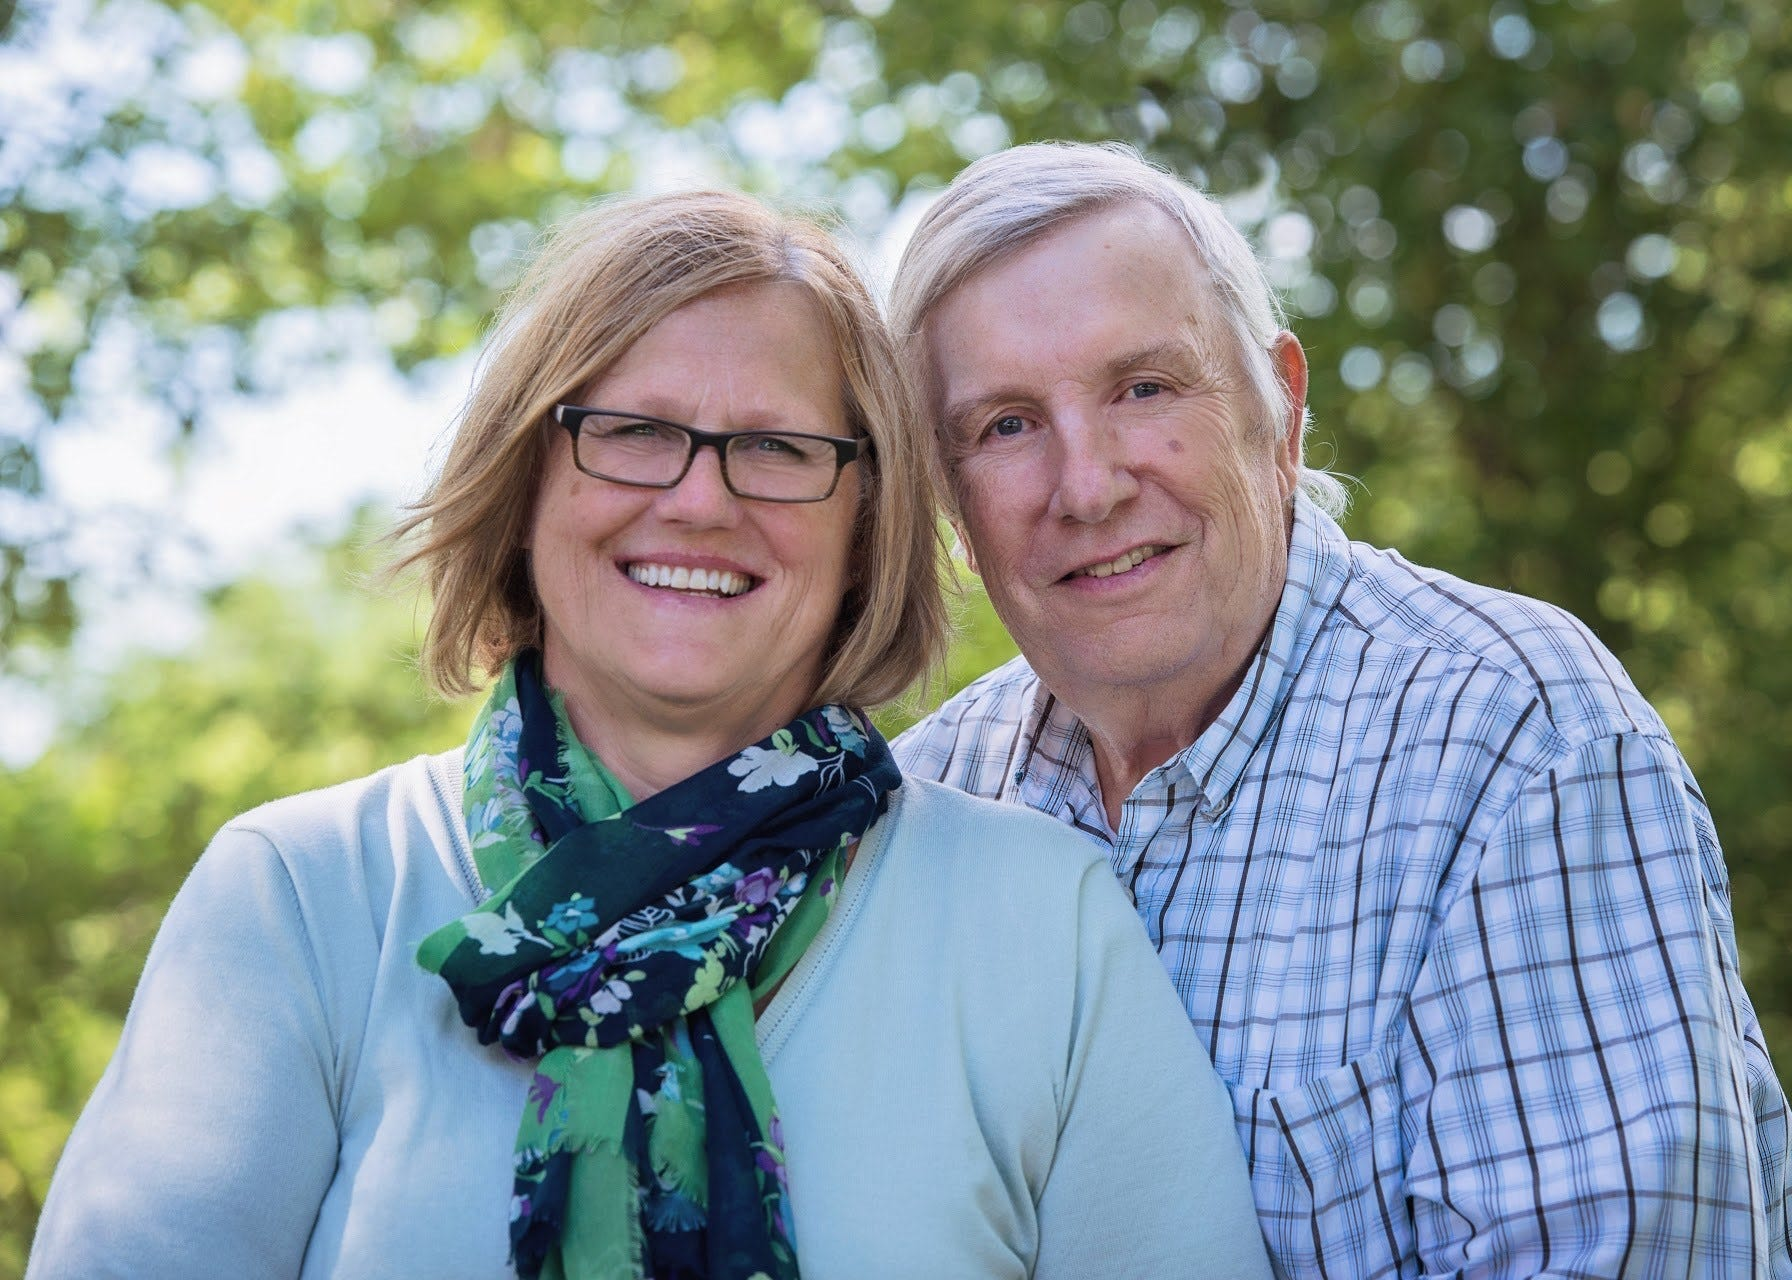 Daniel Boon and his wife, Marlene, pose for a photo in summer 2019. Daniel died of COVID-19 on Sept. 26.